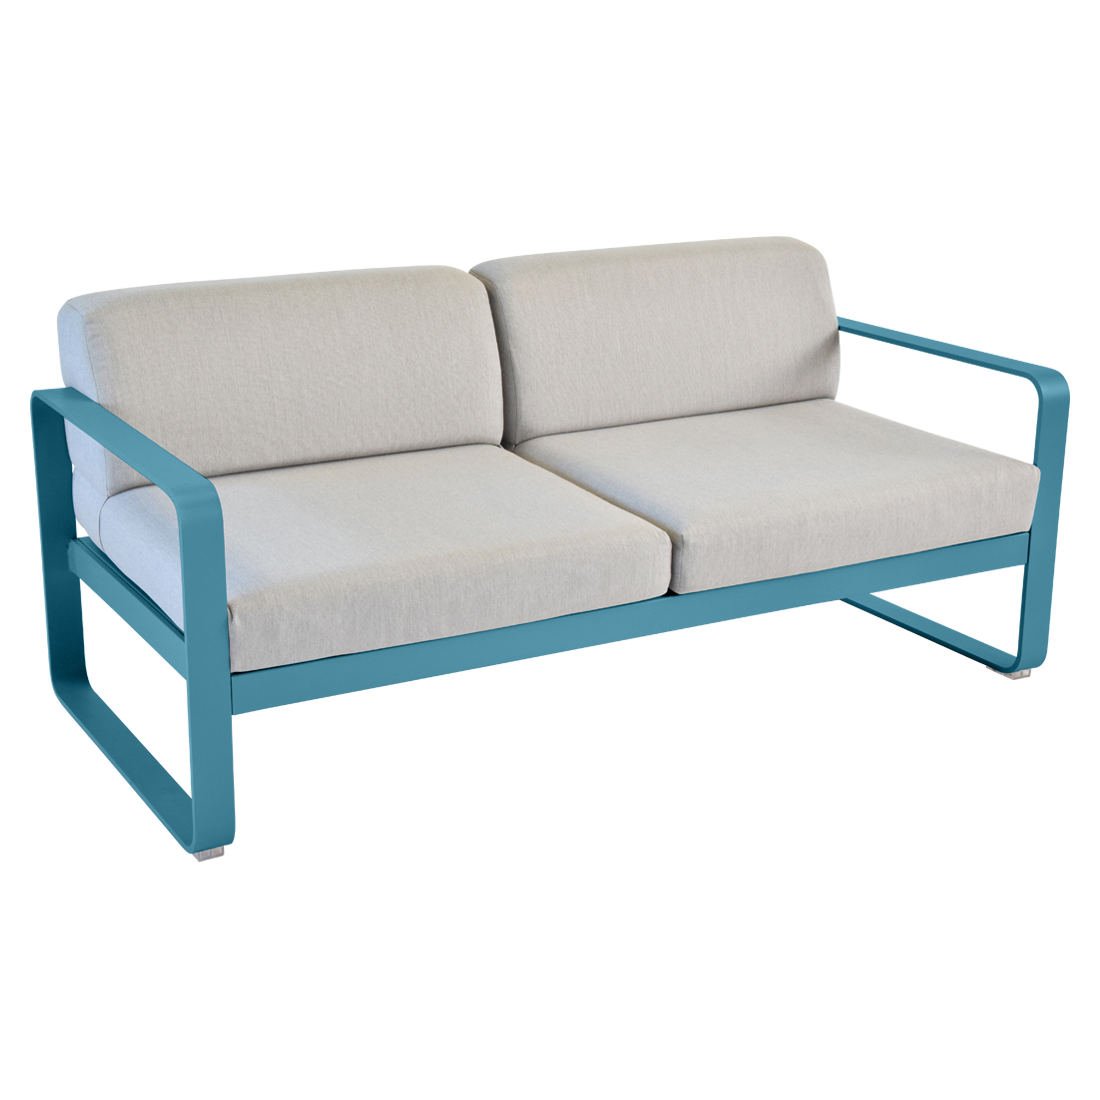 canap bellevie de fermob coussin gris flanelle bleu turquoise. Black Bedroom Furniture Sets. Home Design Ideas